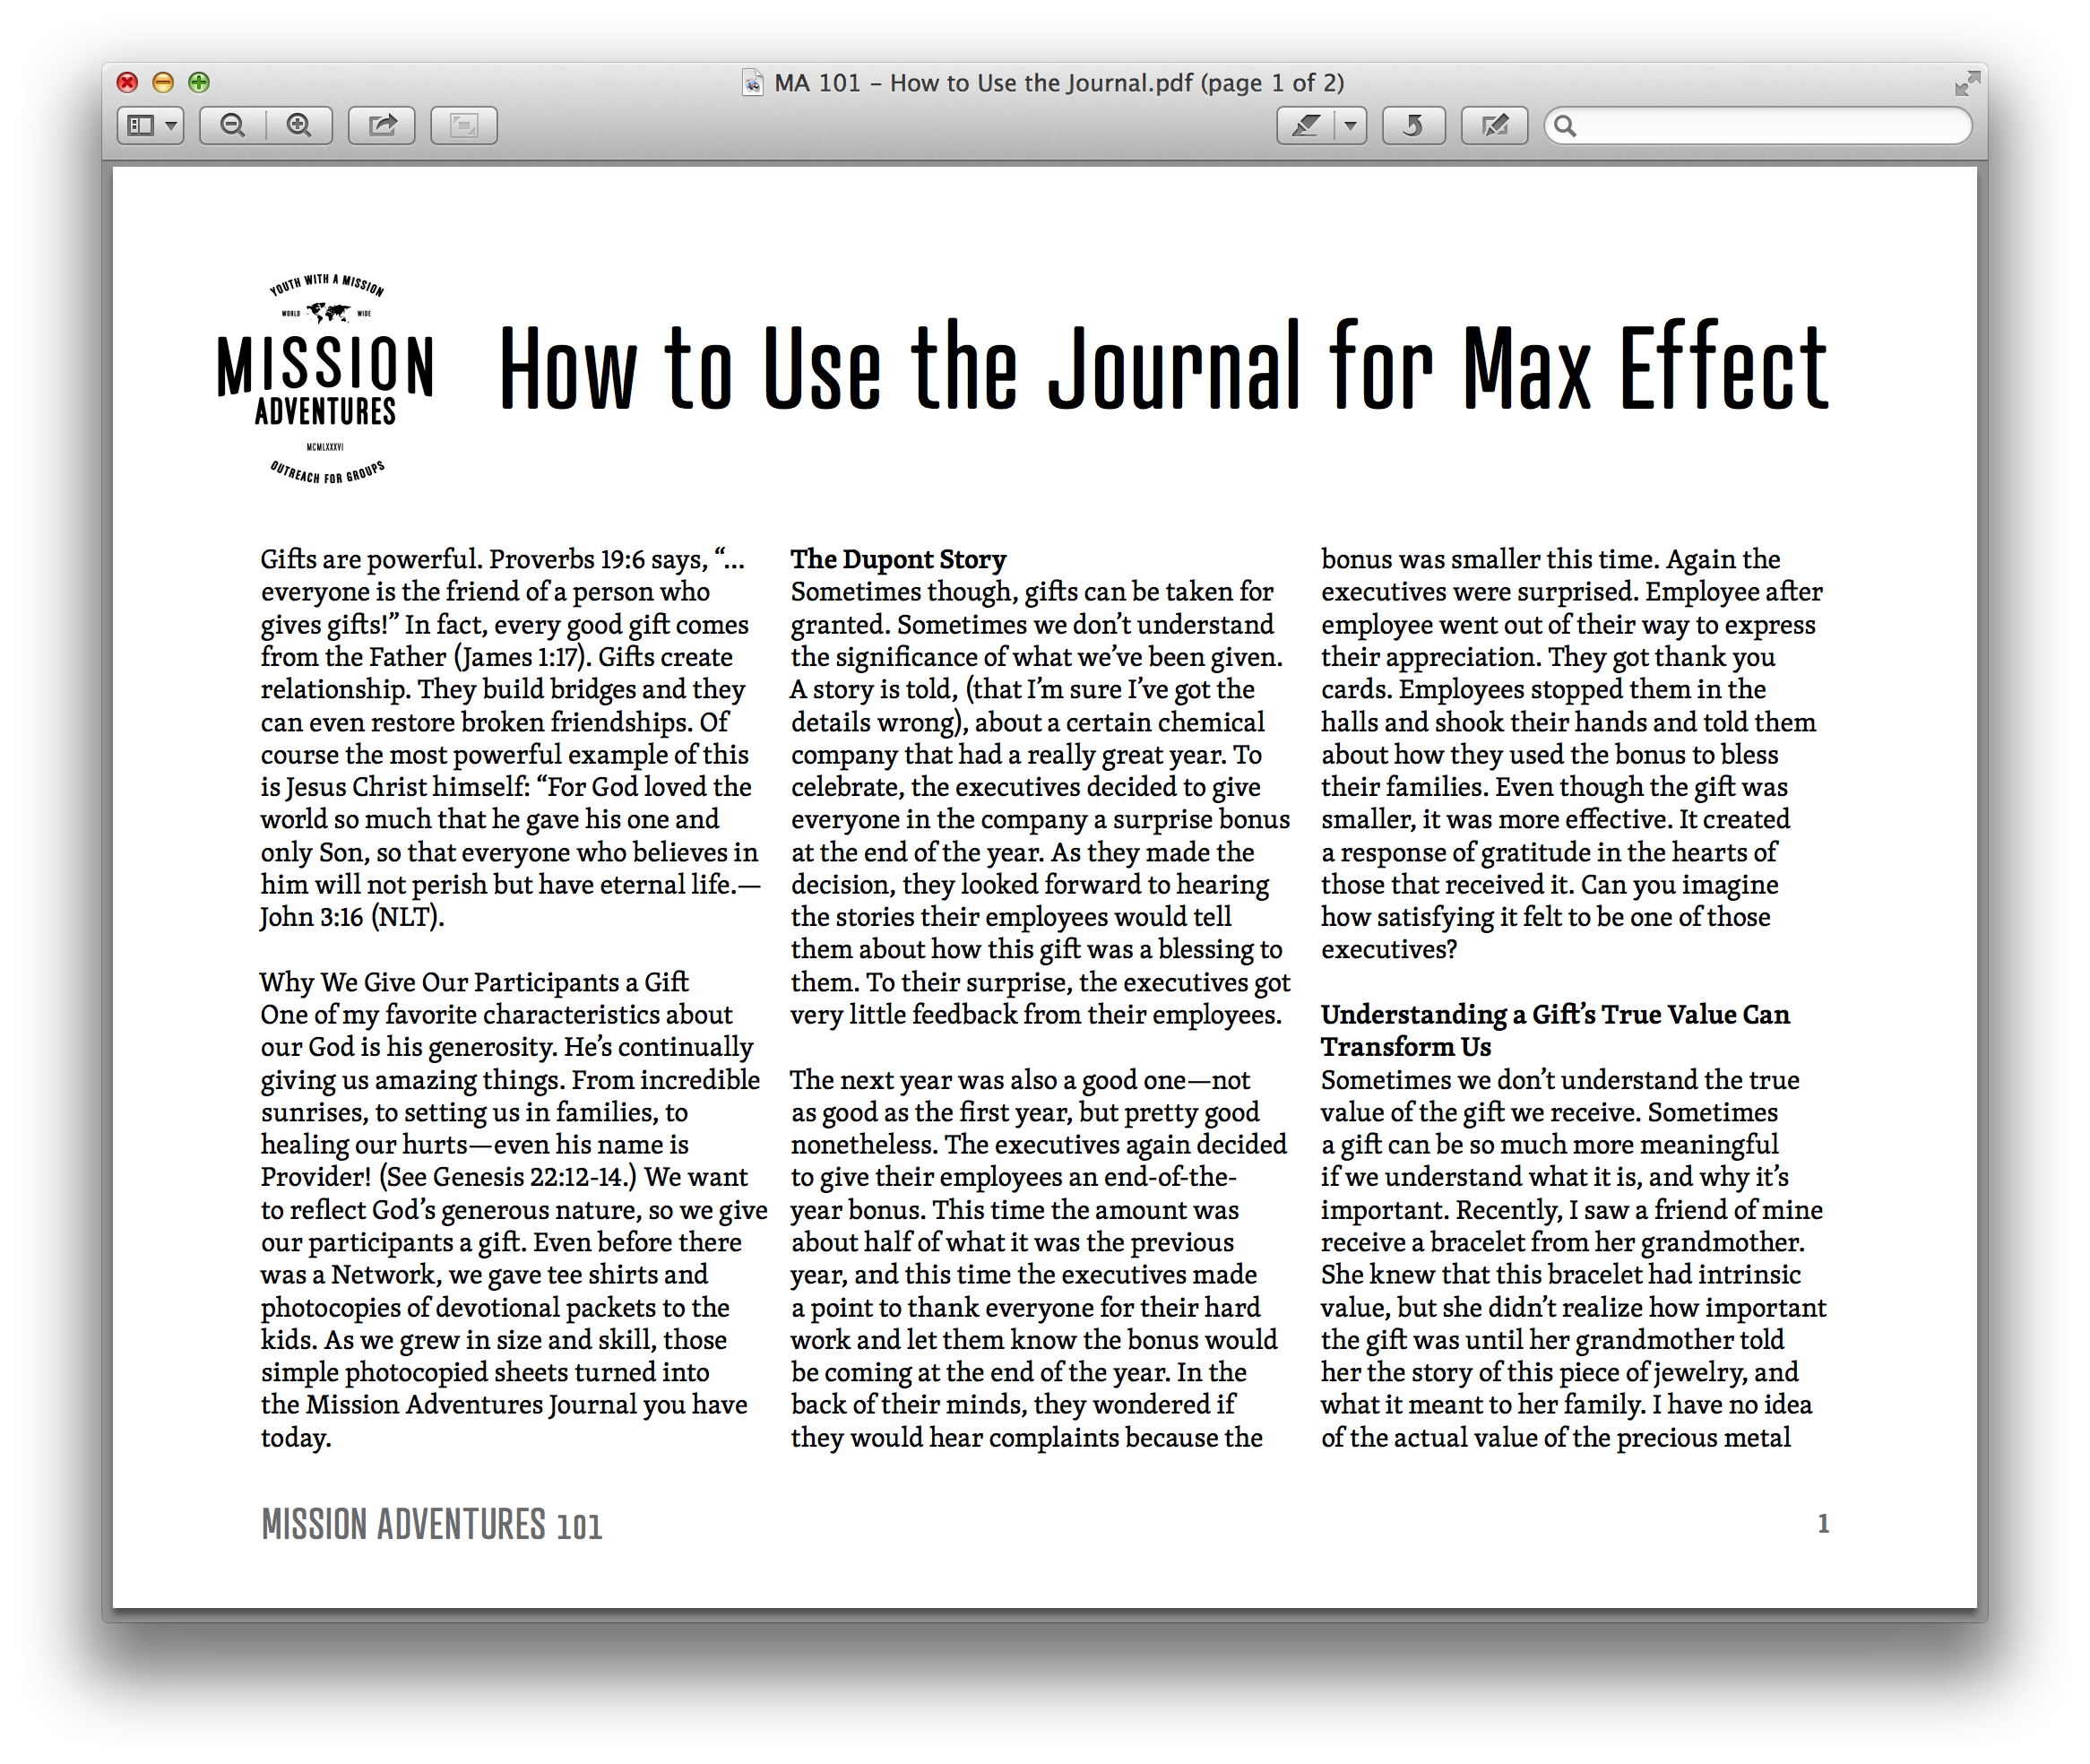 How to Use the Journal for Maximum Effect  This quick two-pager gives some great advice for how you can help your students get the most out of the MA Gear.